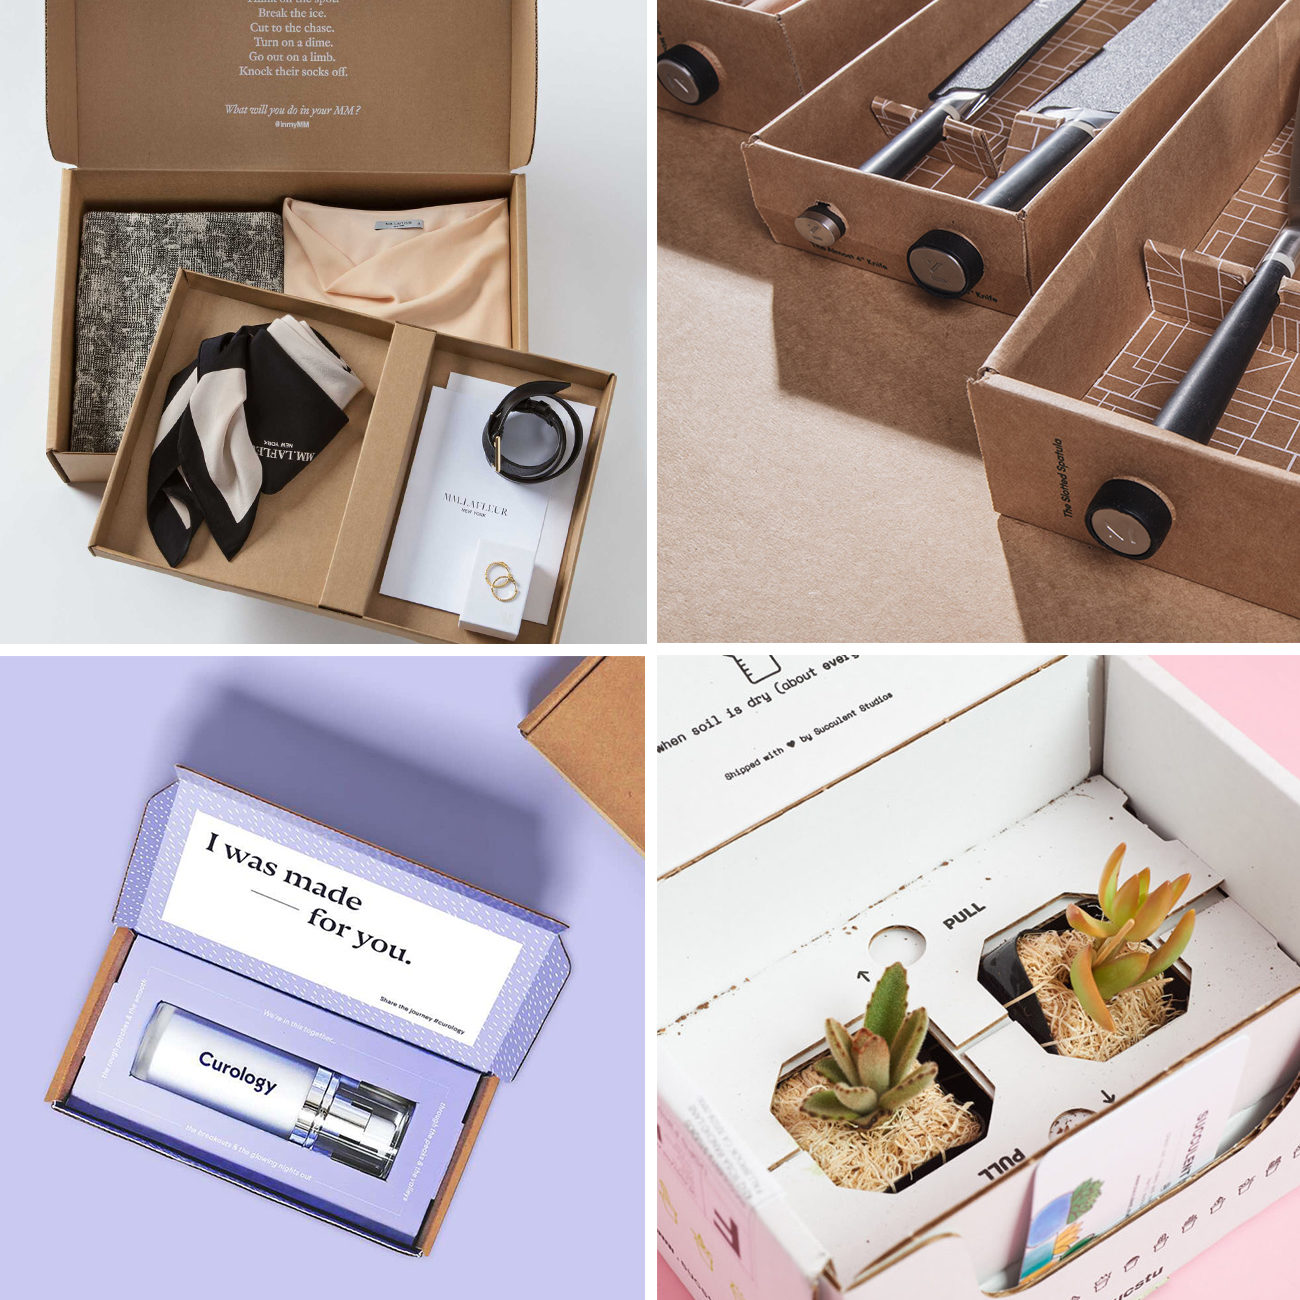 Photos via: It's a Sparkly Life, Lumi, MM La Fleur, Curology, My Subscription Addiction 90 Ideas to Spruce Up Your Holiday Packaging Design